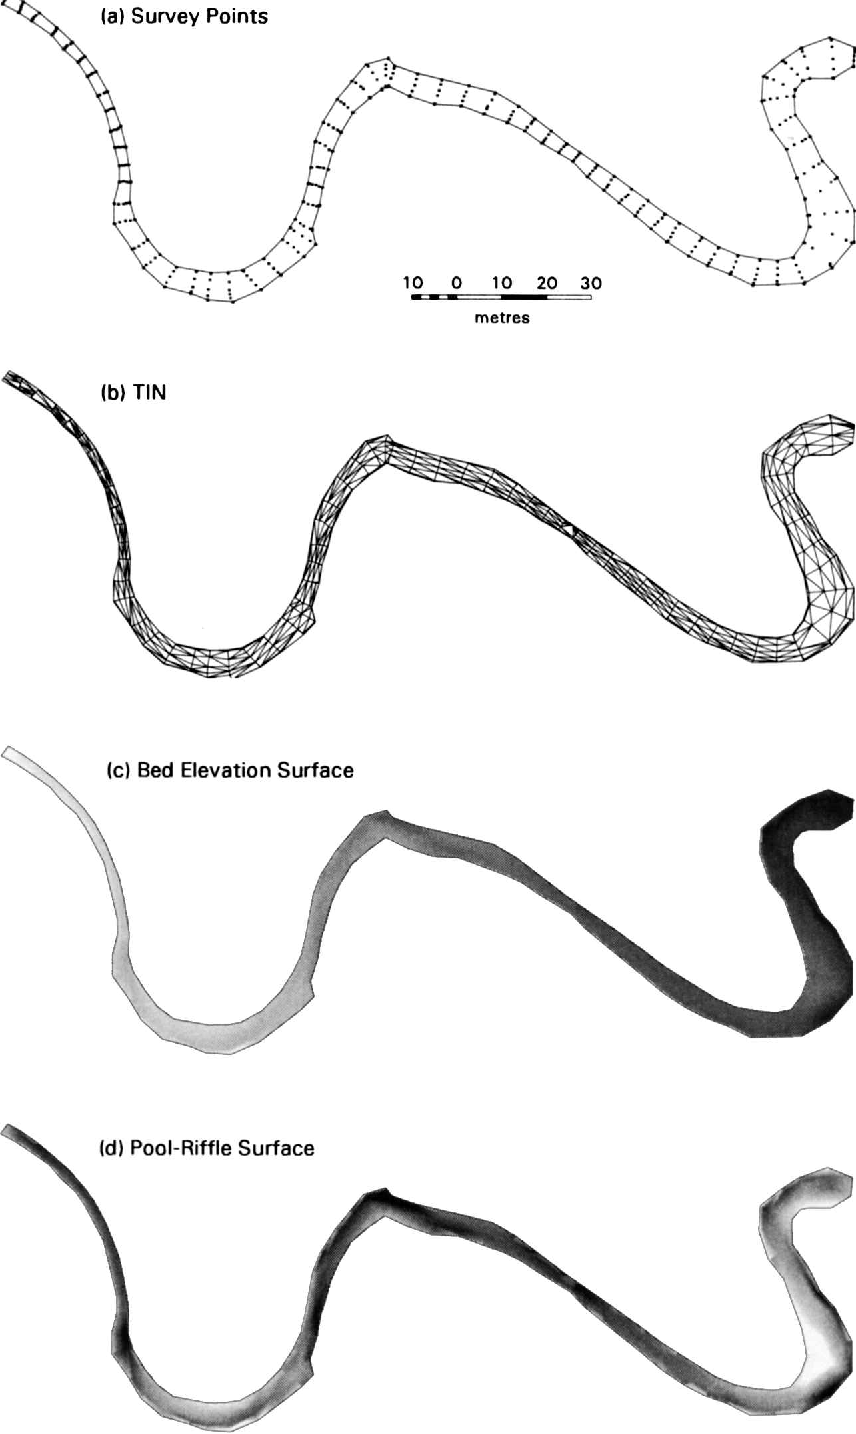 Modelling River Channel Topography Using GIS - Semantic Scholar